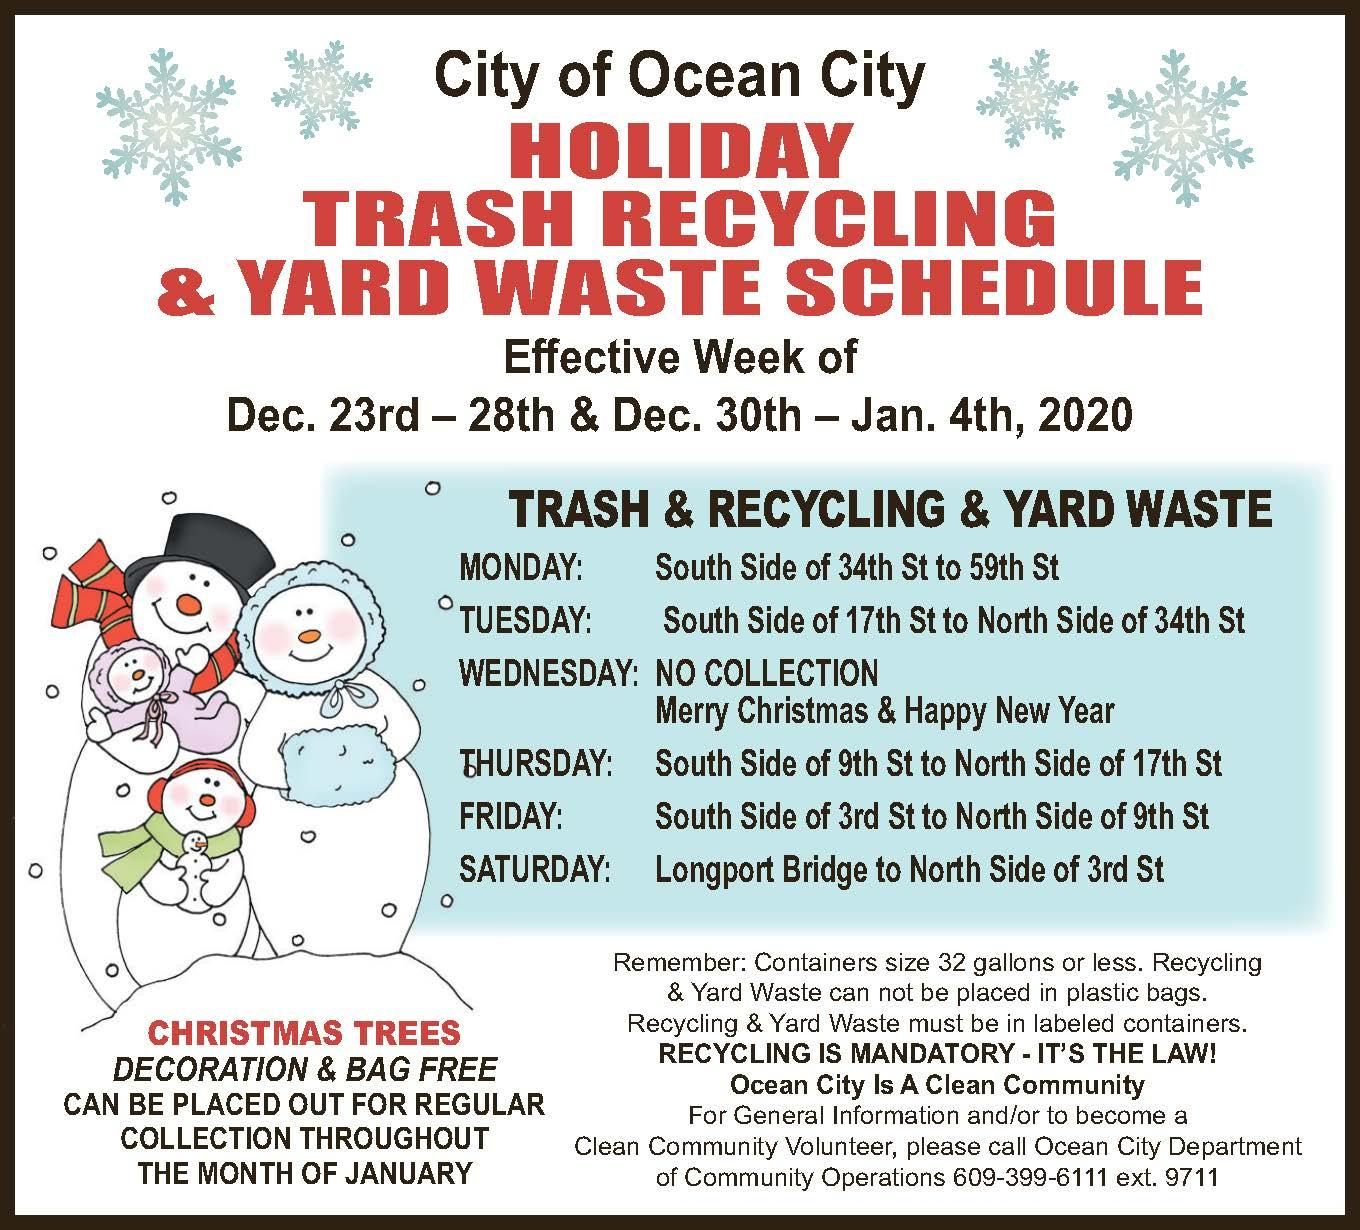 Christmas Holiday Schedule For Trash Pickup 2020 Holiday Trash and Recycling Pickup Schedule